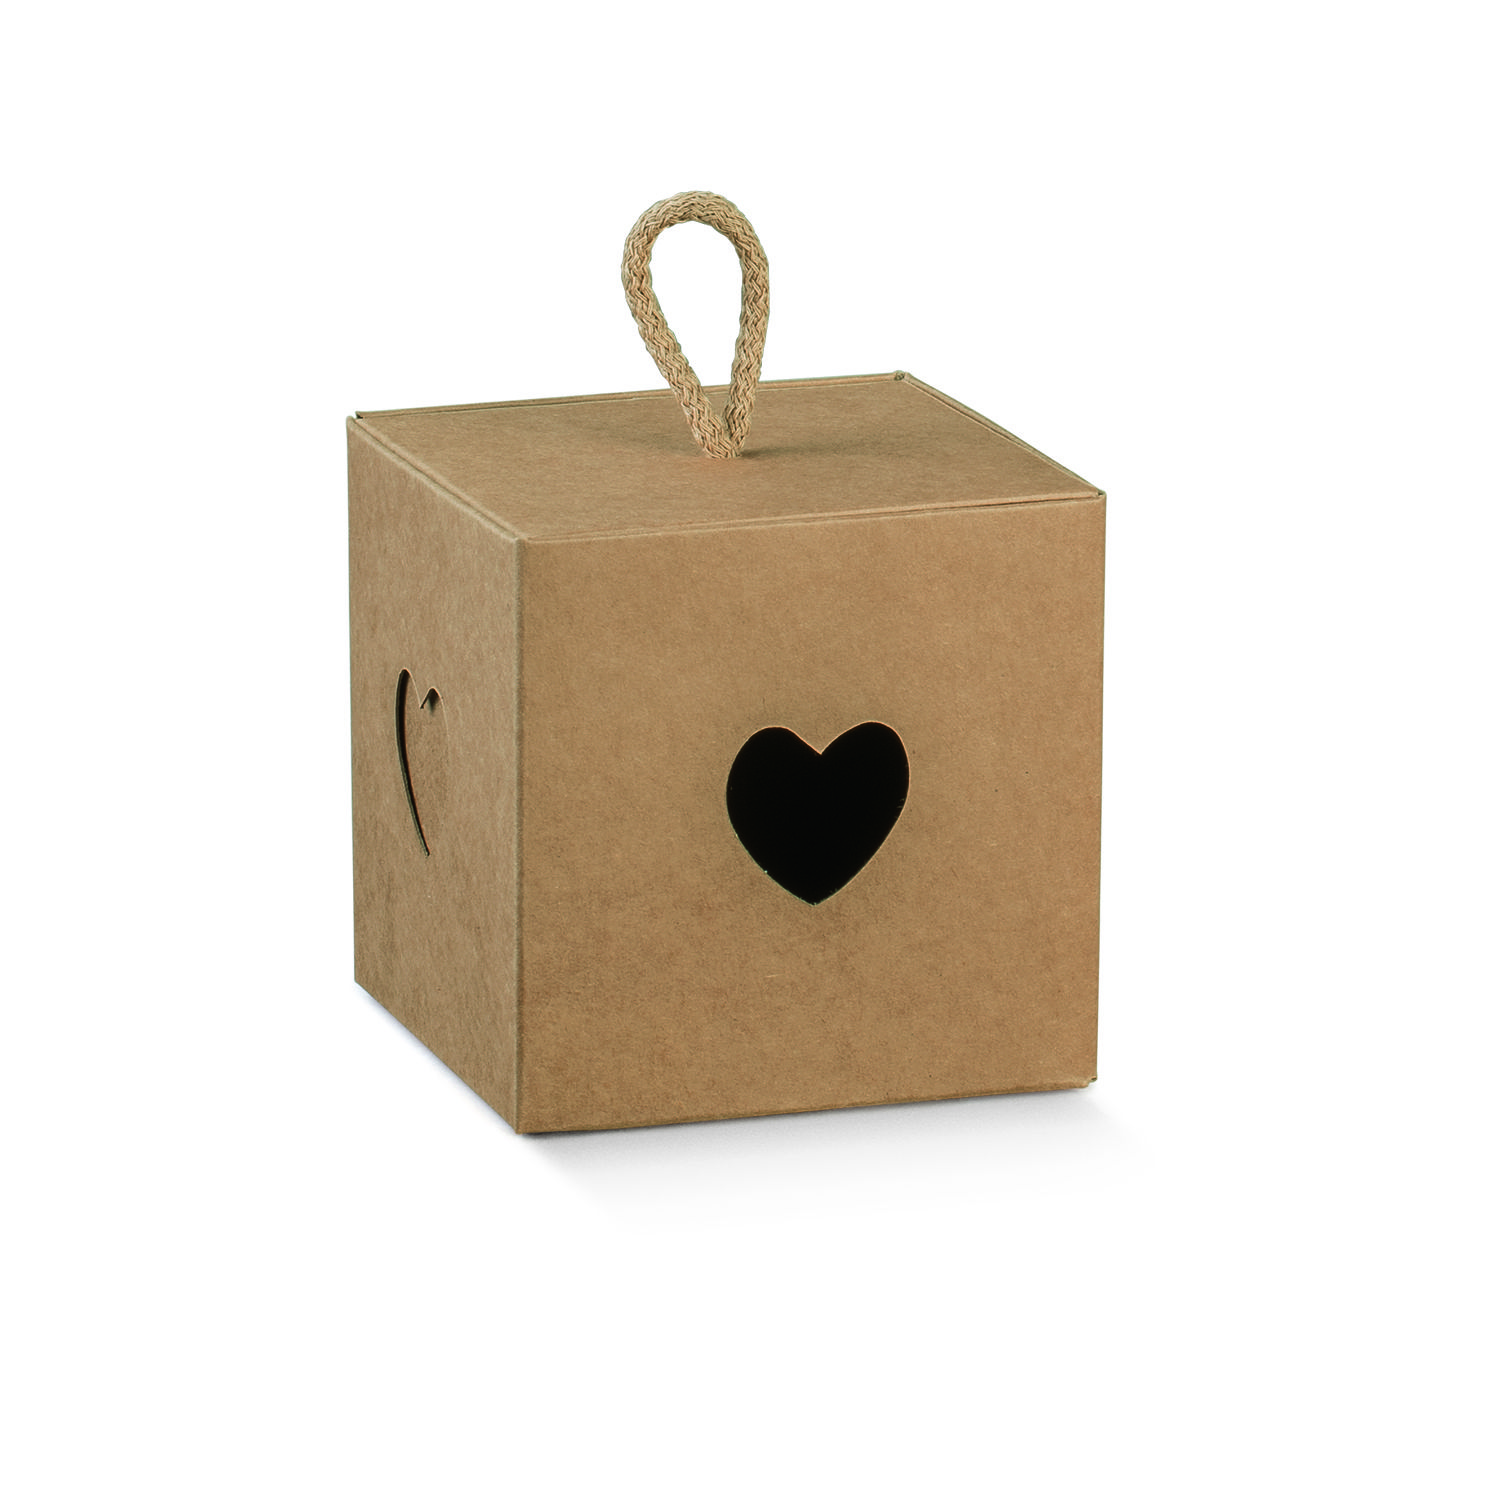 cajita_corazon_craft_carton